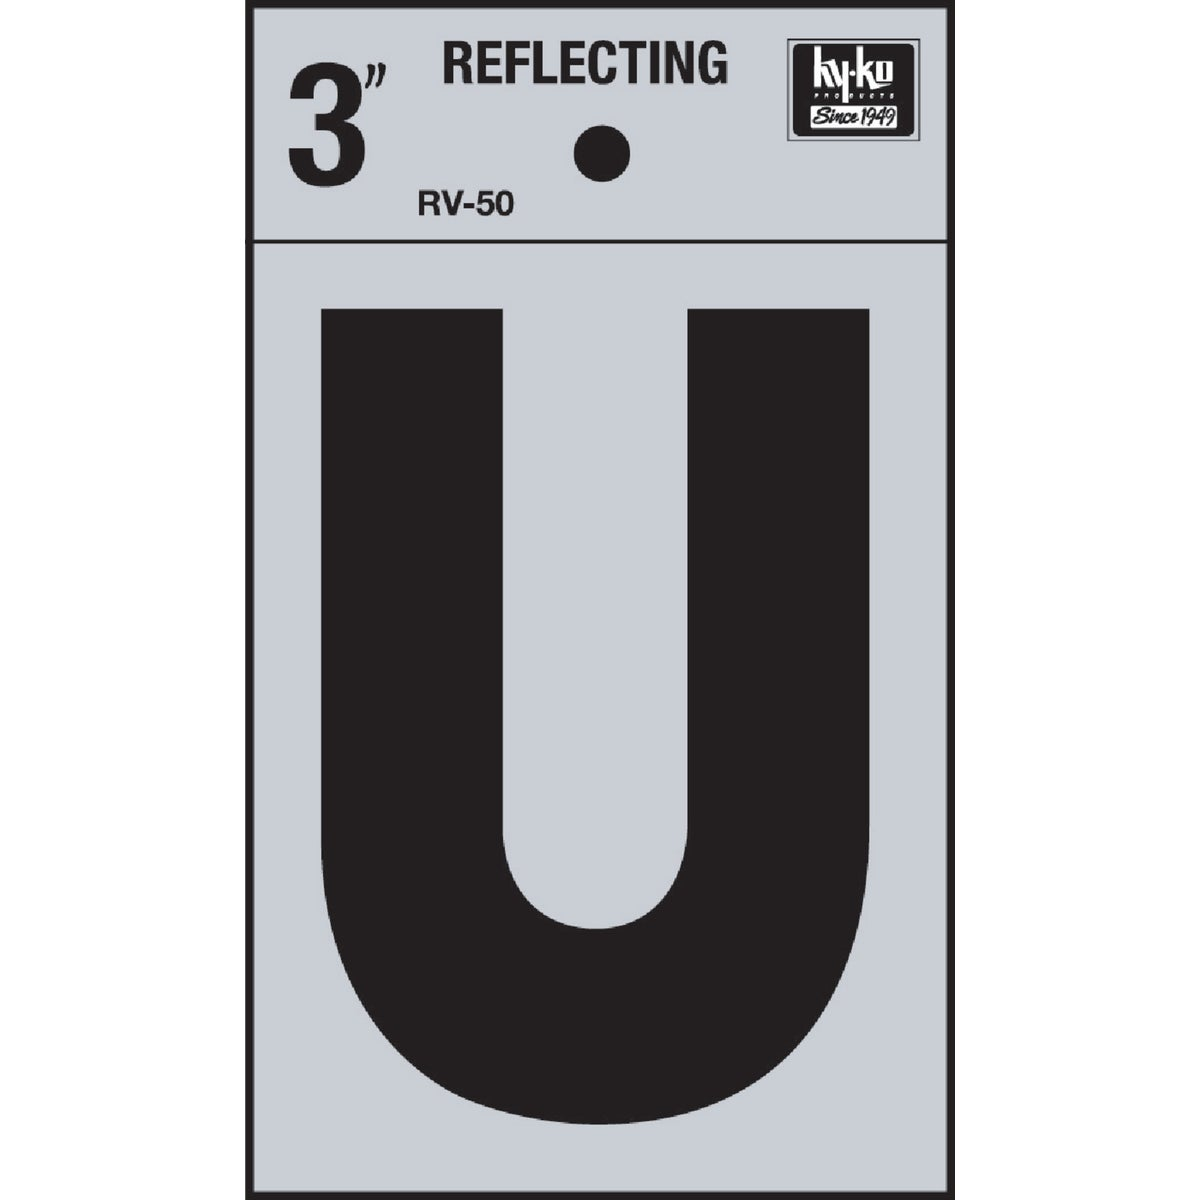 "3"" REFLECT LETTER U - RV-50U by Hy Ko Prods Co"